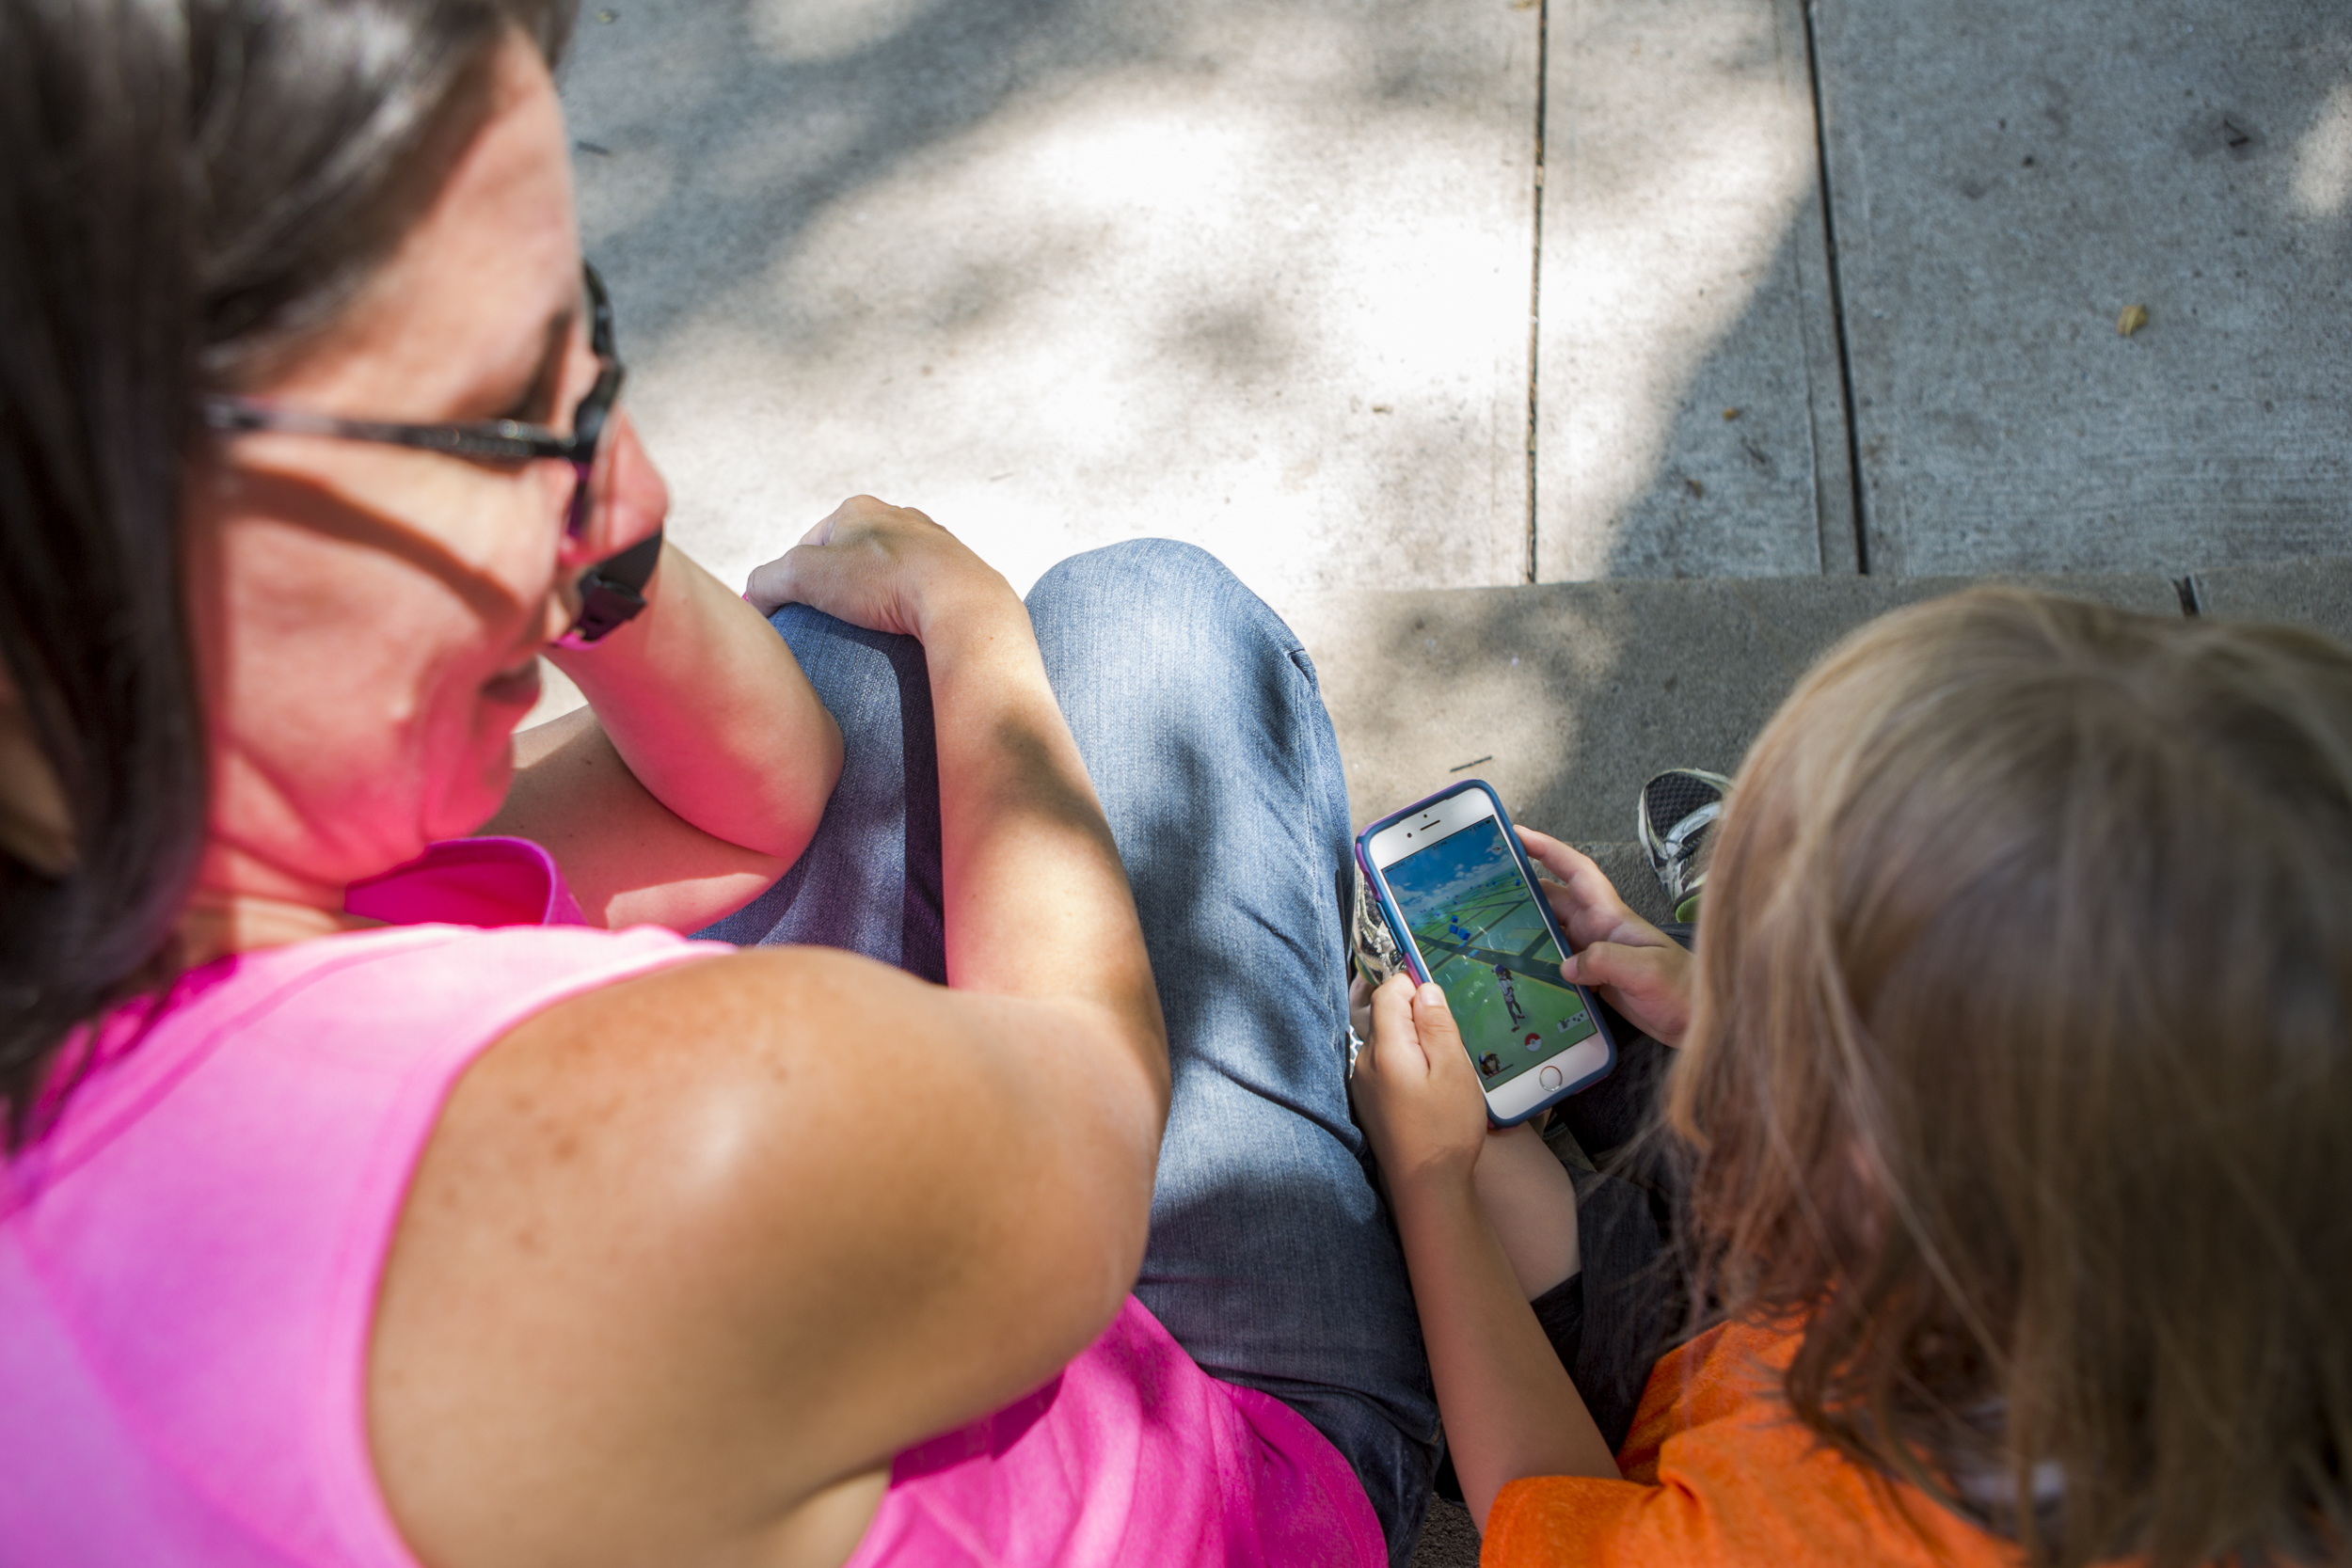 Marcia DiStaso accompanies six-year-old son Matthew DiStaso on the hunt for a Pikachu along side of several other Pokémon Go players on the steps of Old Main on Penn State's campus on Monday, July 18, 2016.